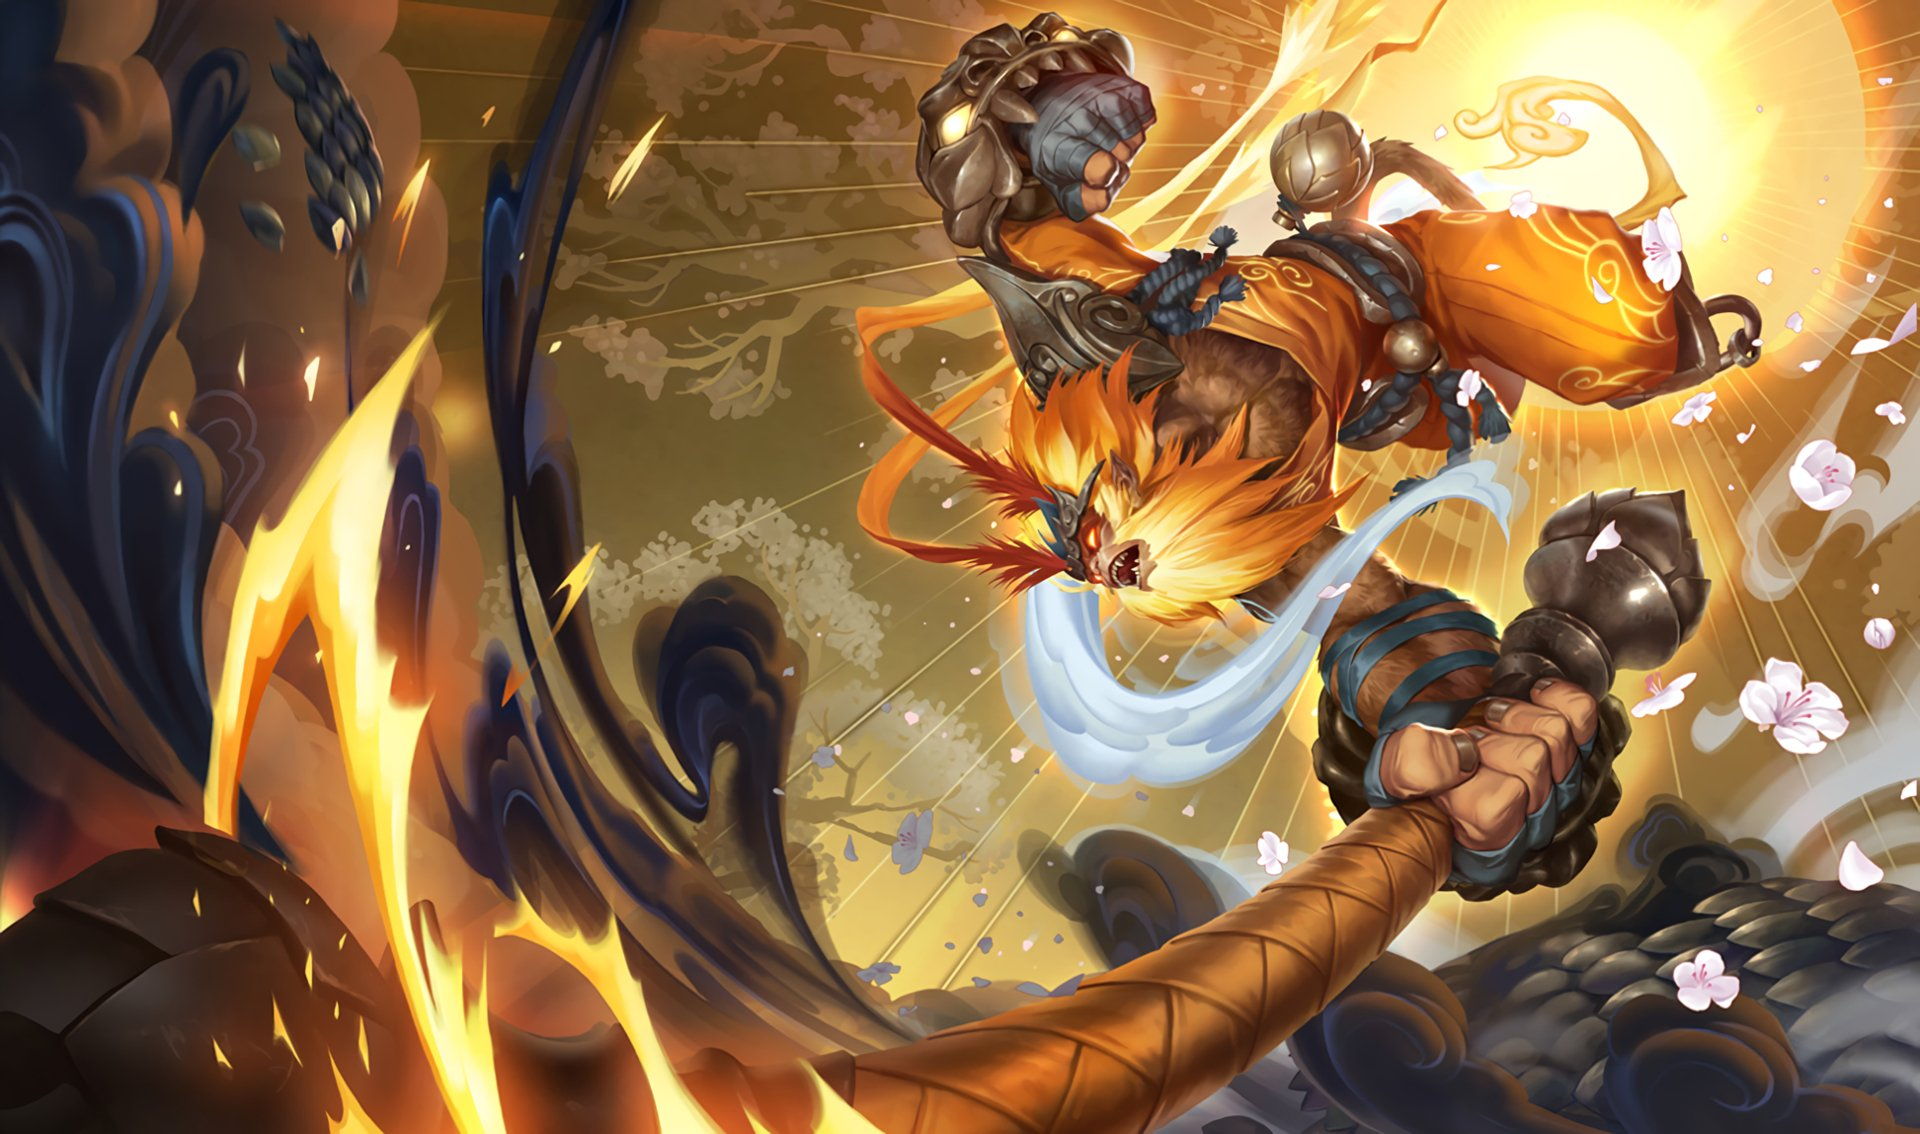 Video Game - League Of Legends  Wukong (League Of Legends) Wallpaper